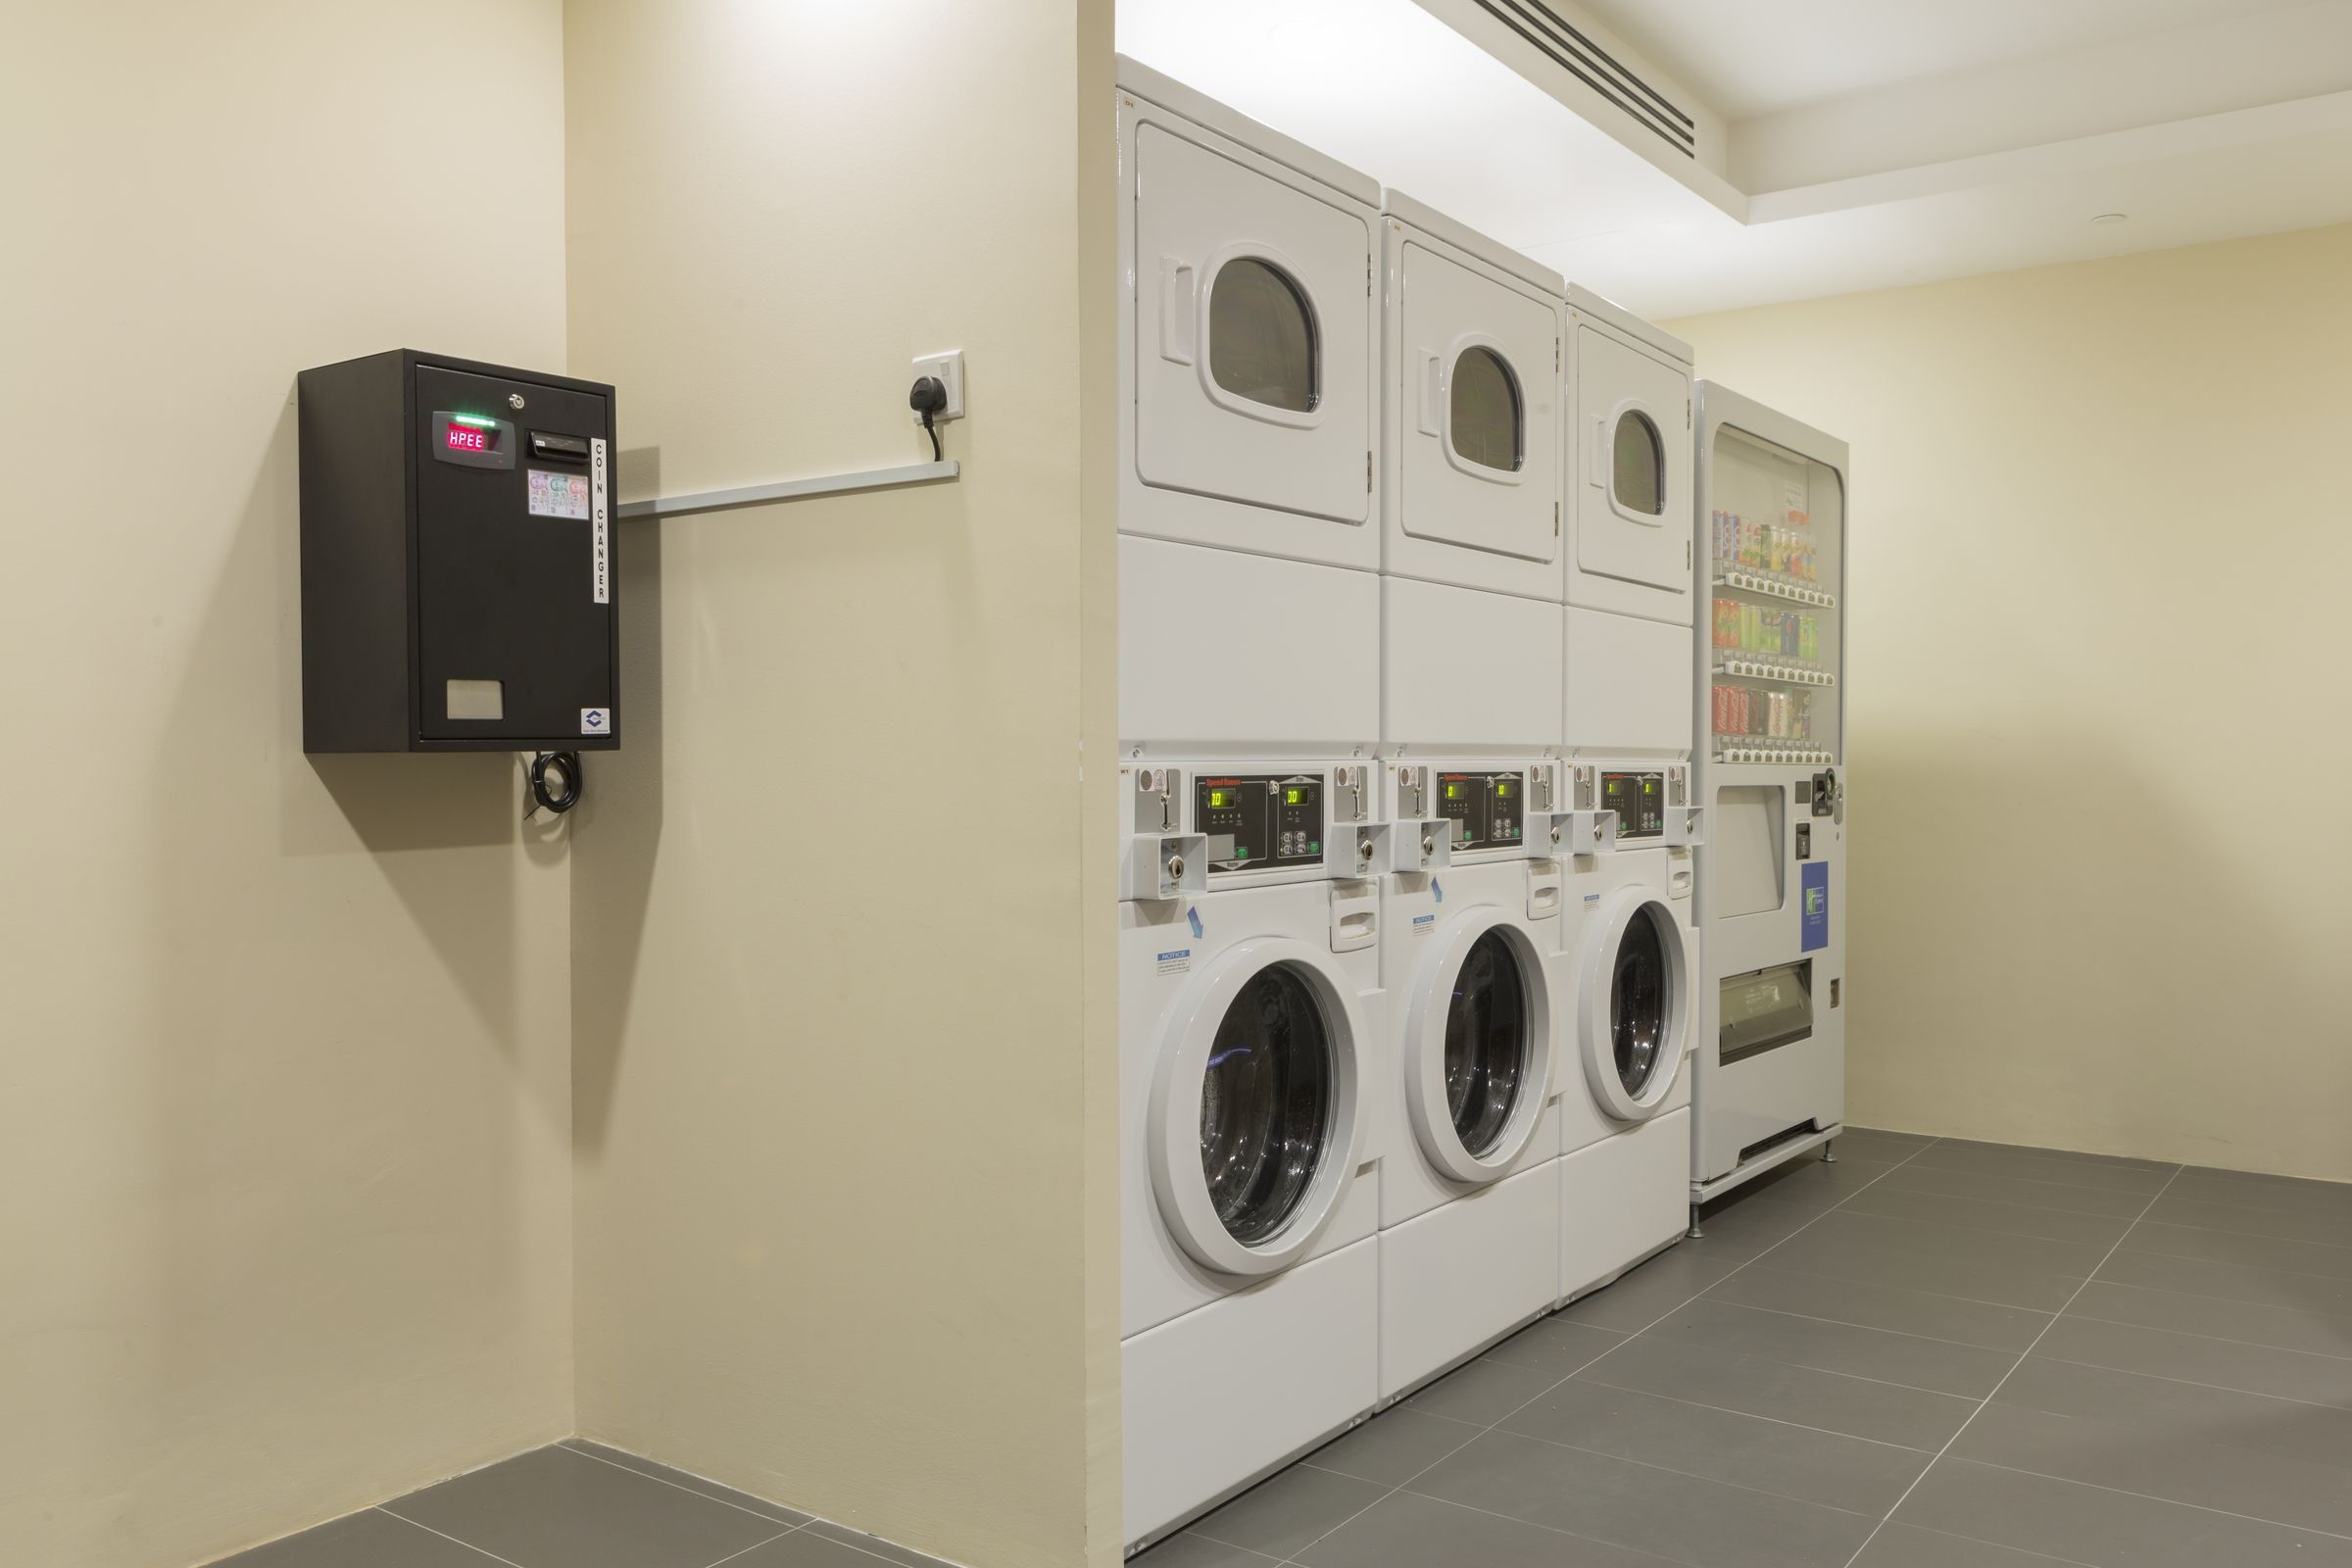 SelfService Laundry Room at Holiday Inn Express Singapore